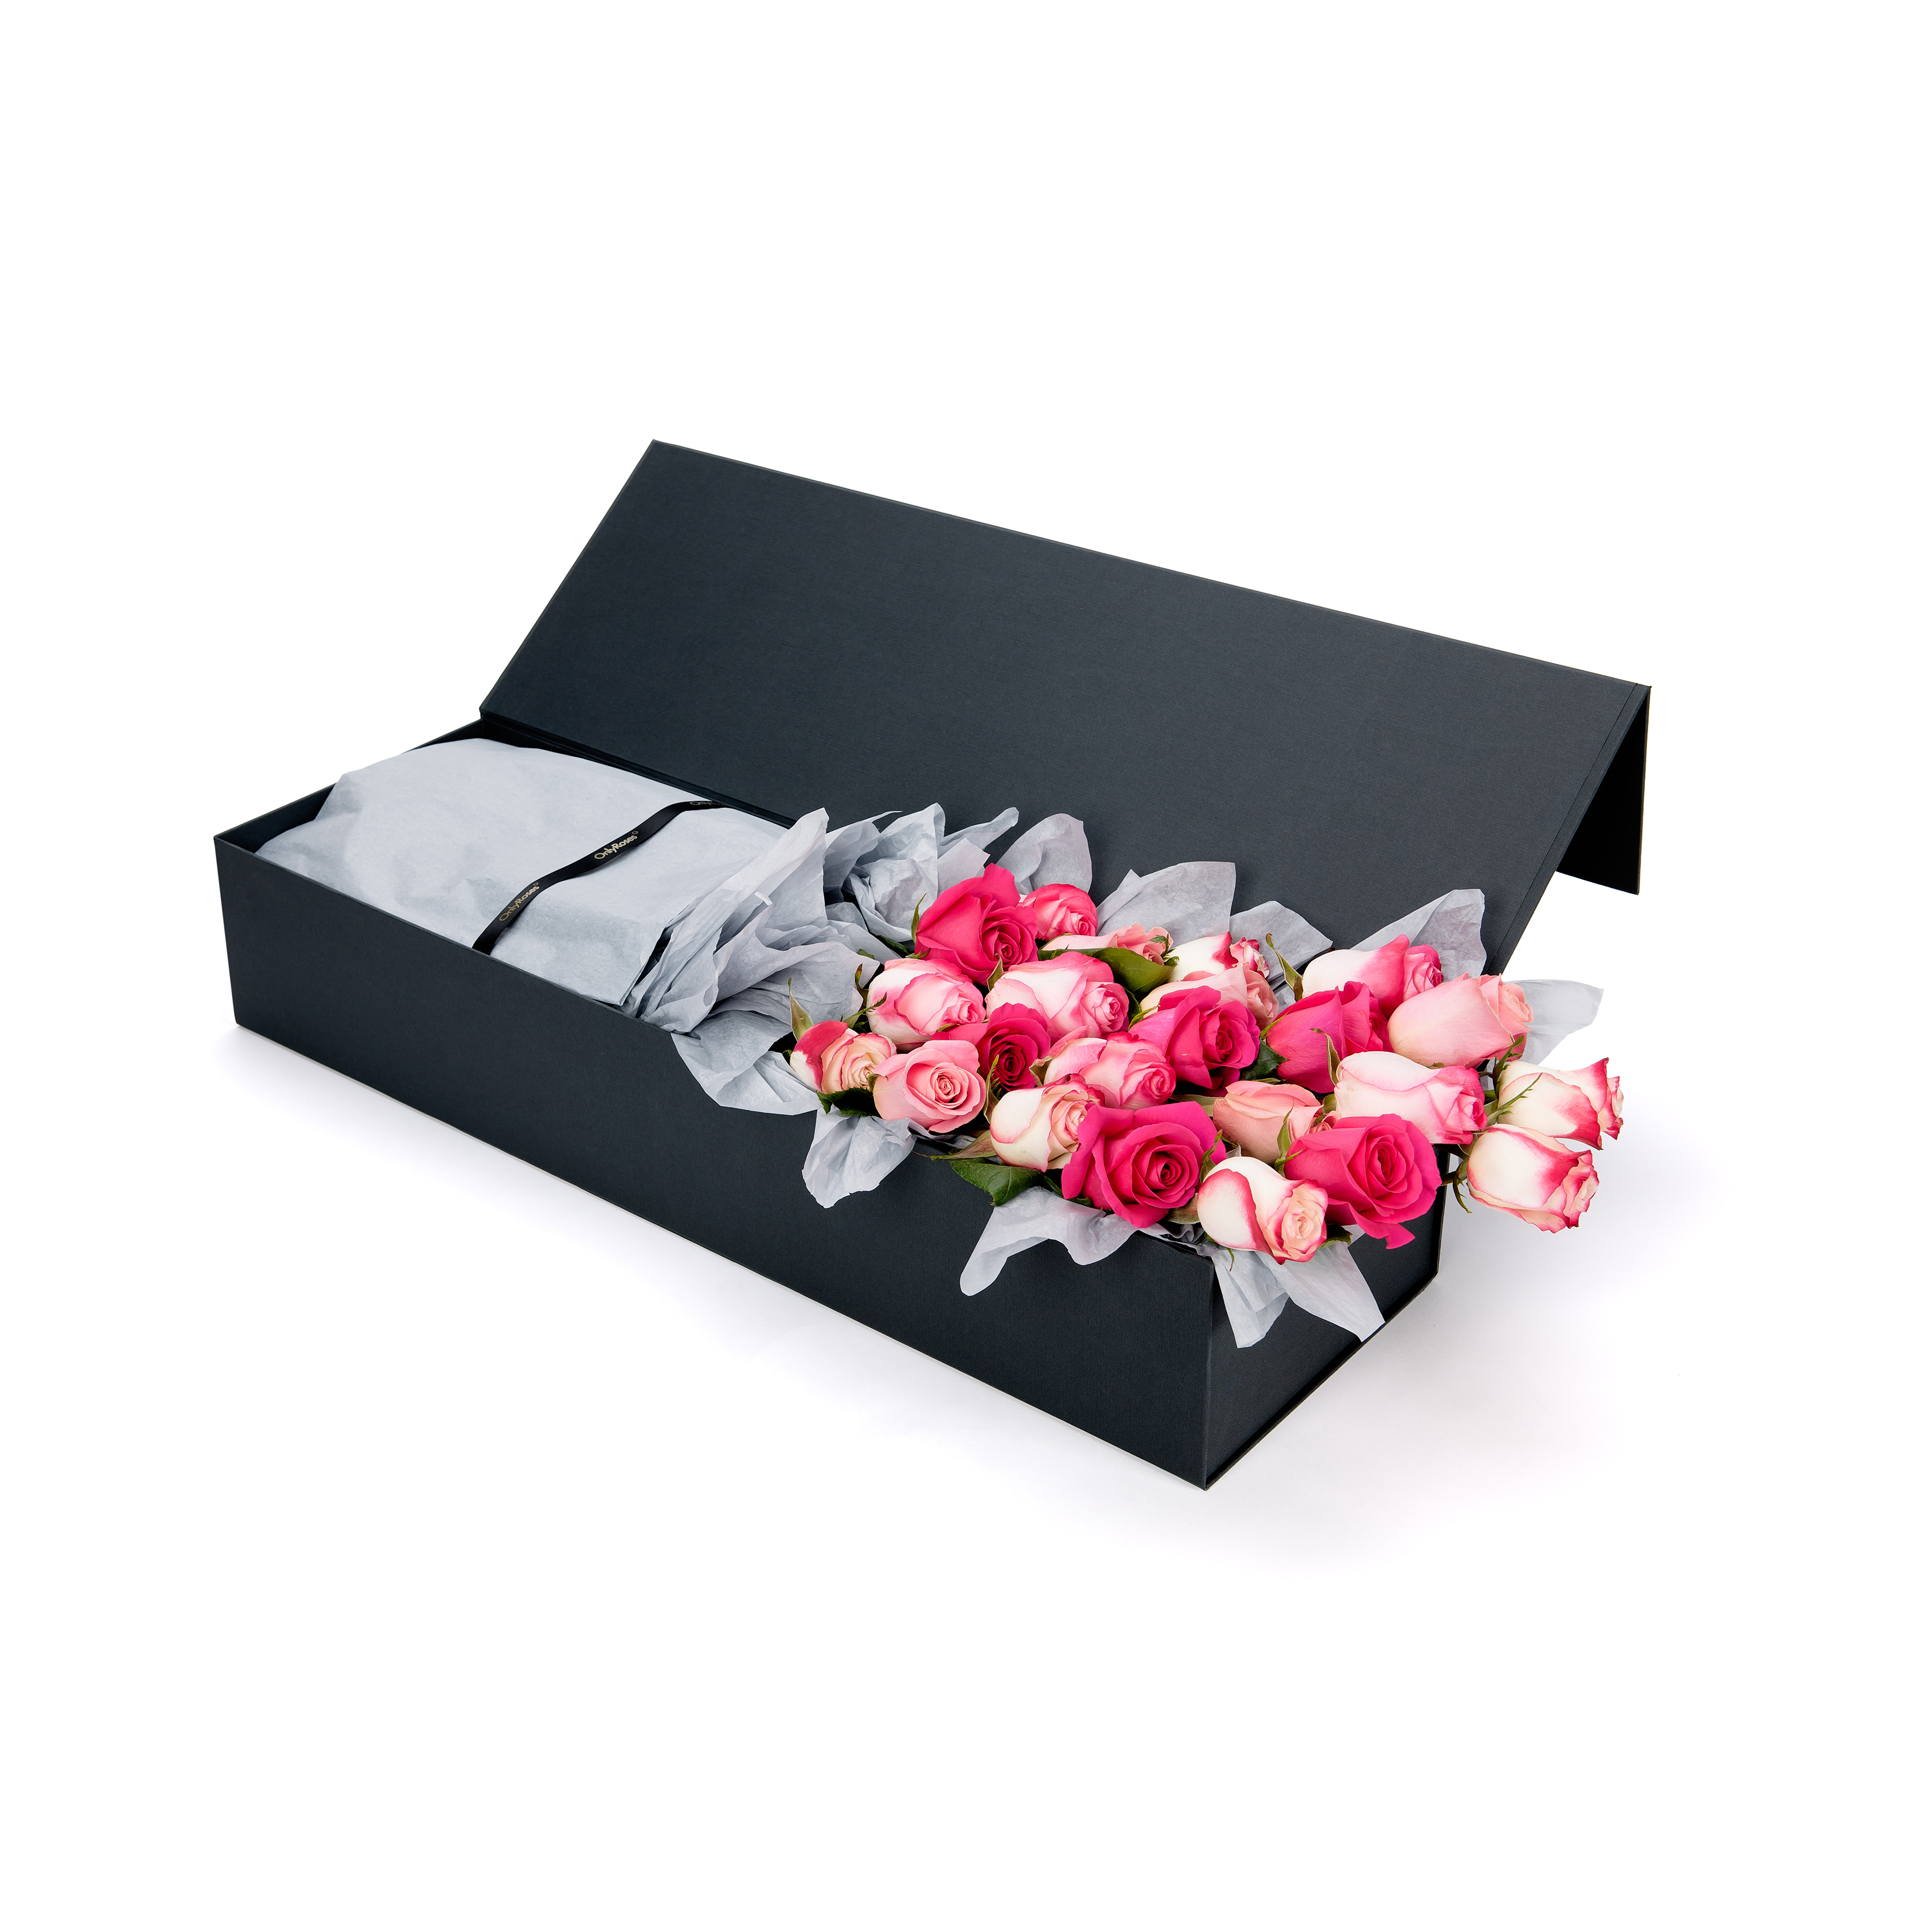 The classic rose gesture onlyroses roses delivered throughout dubai izmirmasajfo